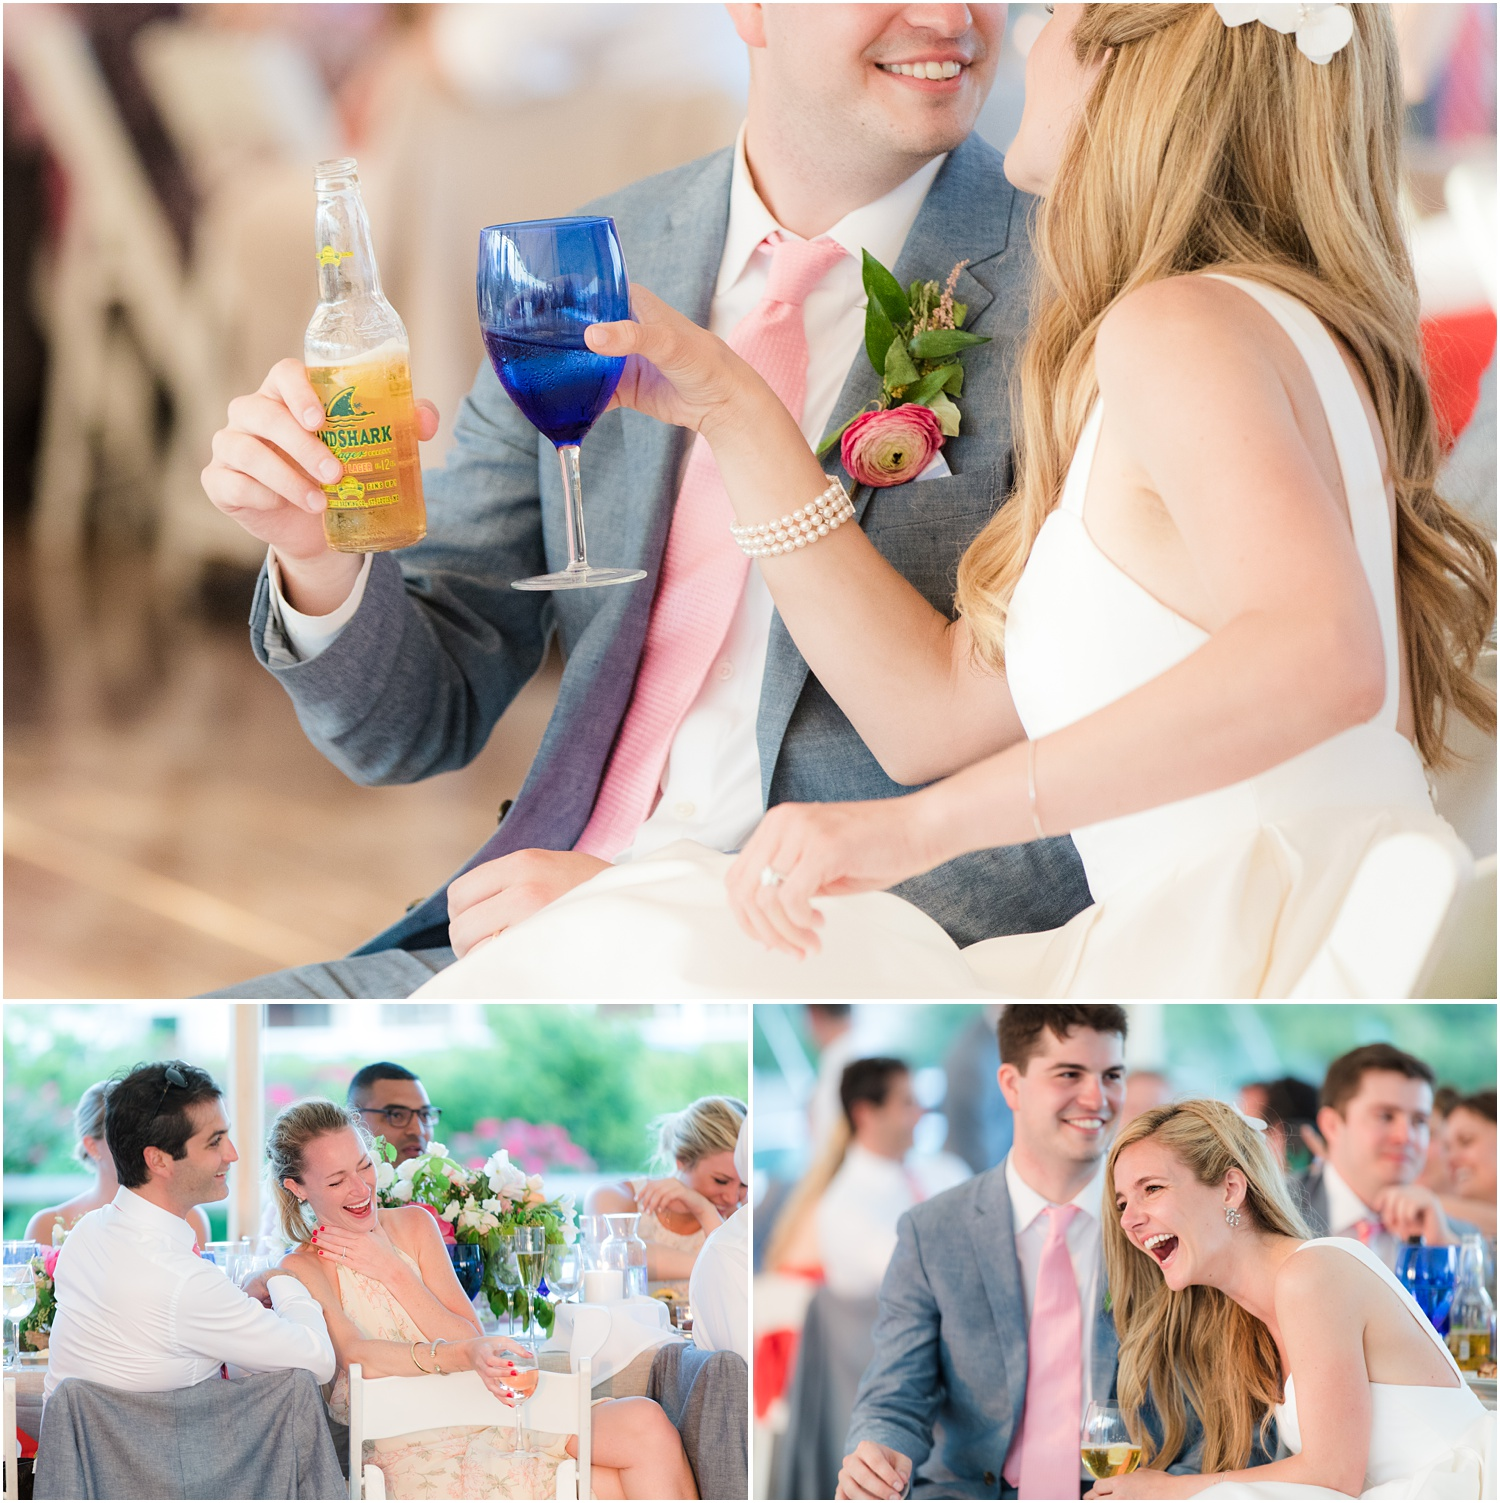 Laughter during speeches at Mantoloking wedding reception.